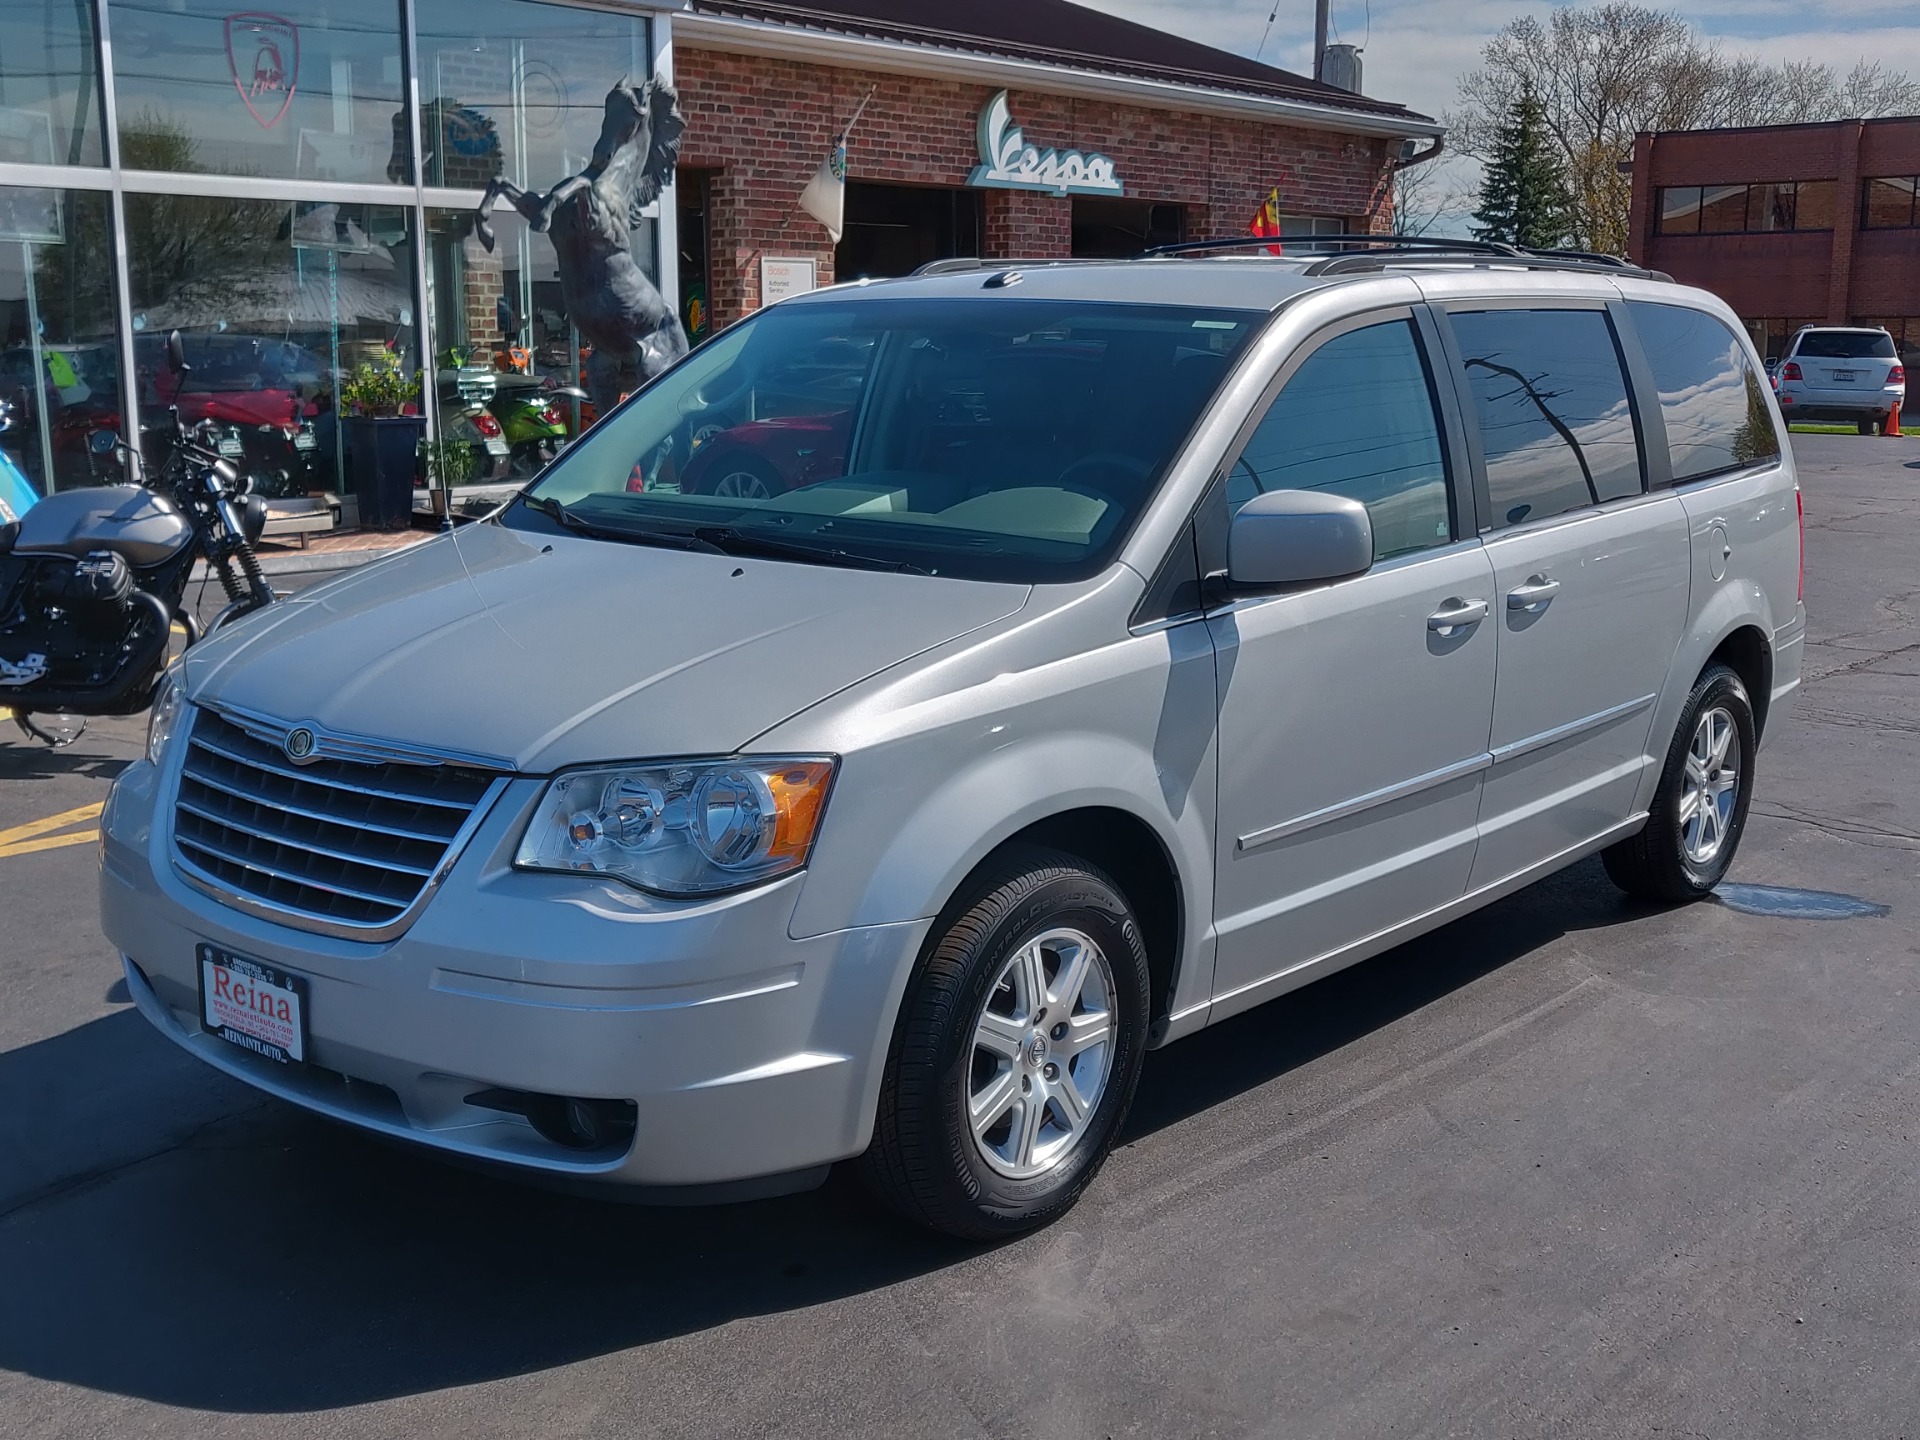 Used-2009-Chrysler-Town-and-Country-Touring